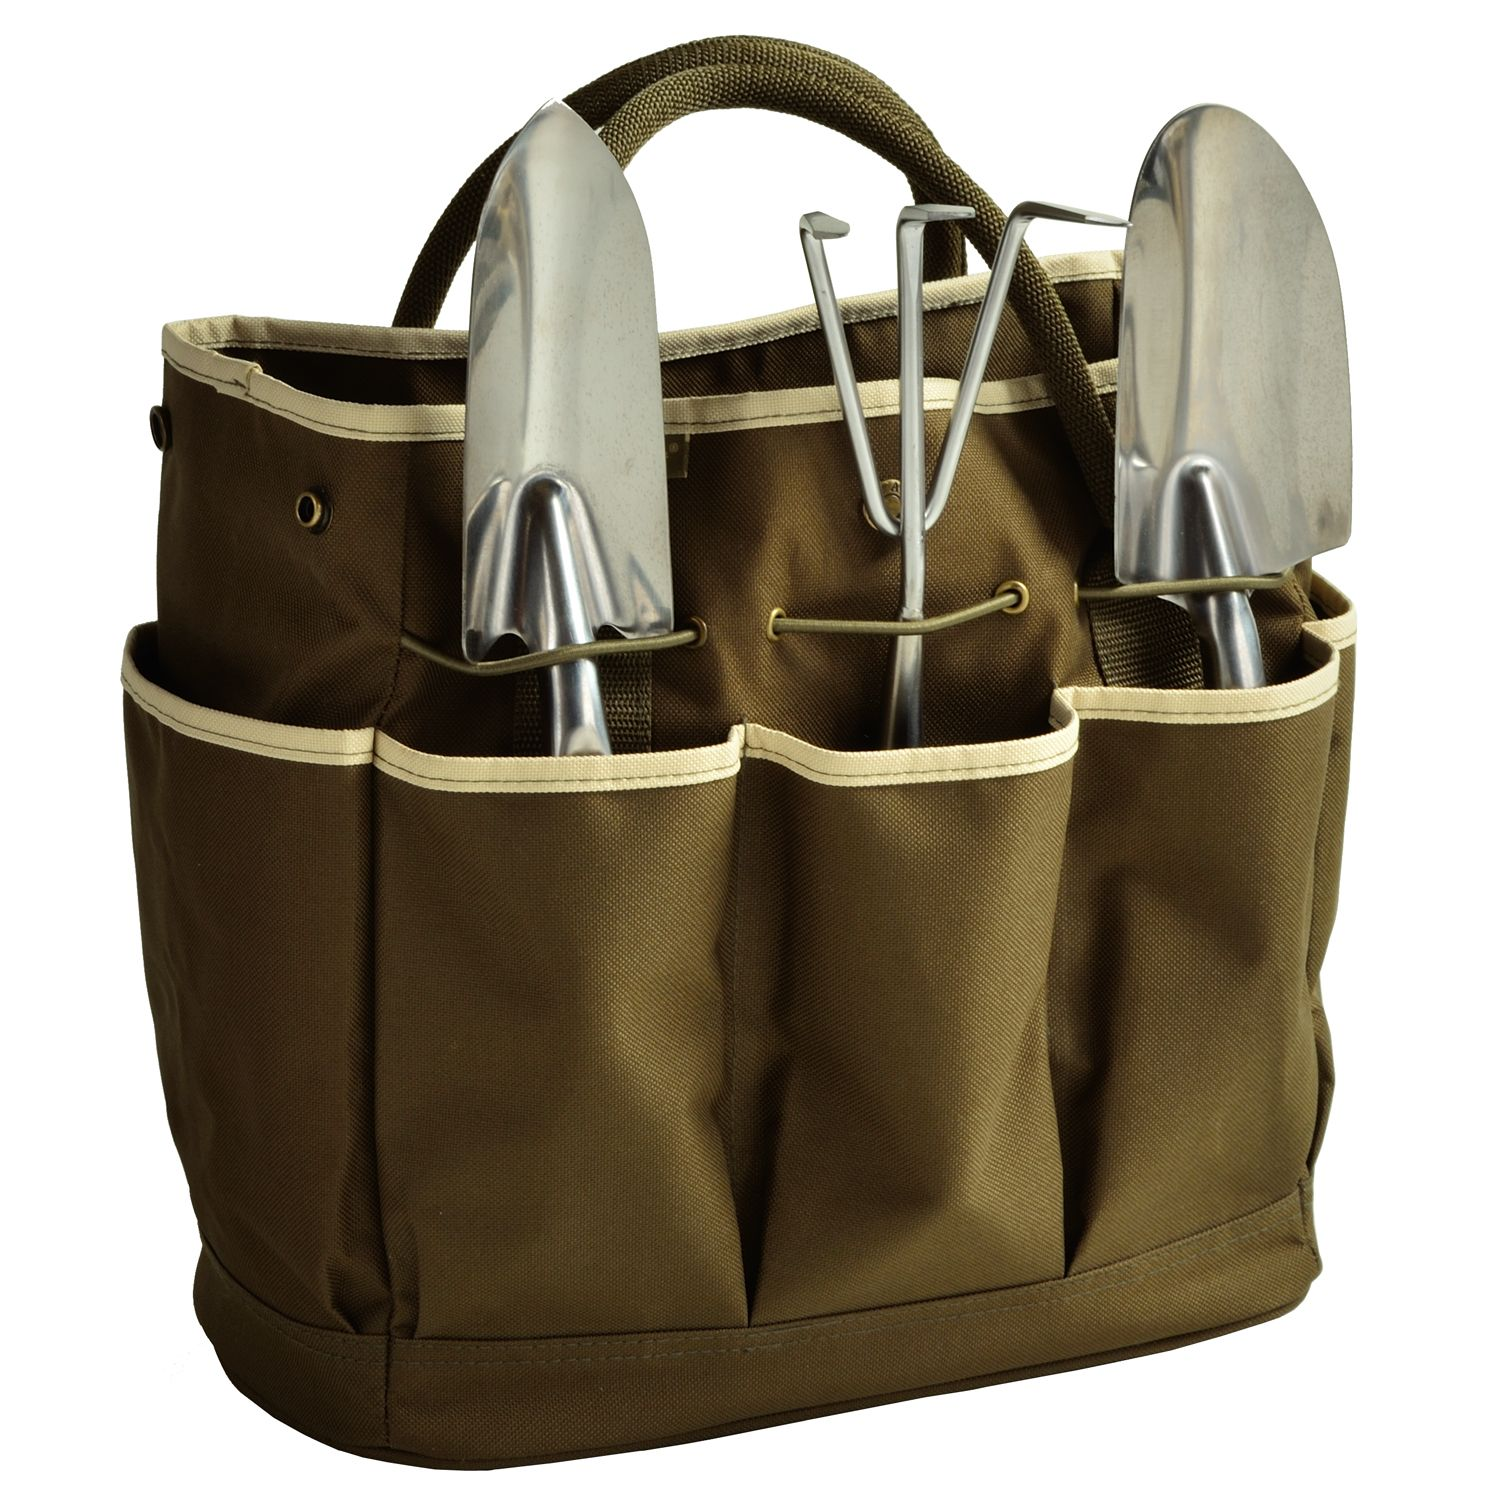 Charmant Unique Garden Tote #1 Gardening Tool Set With Tote